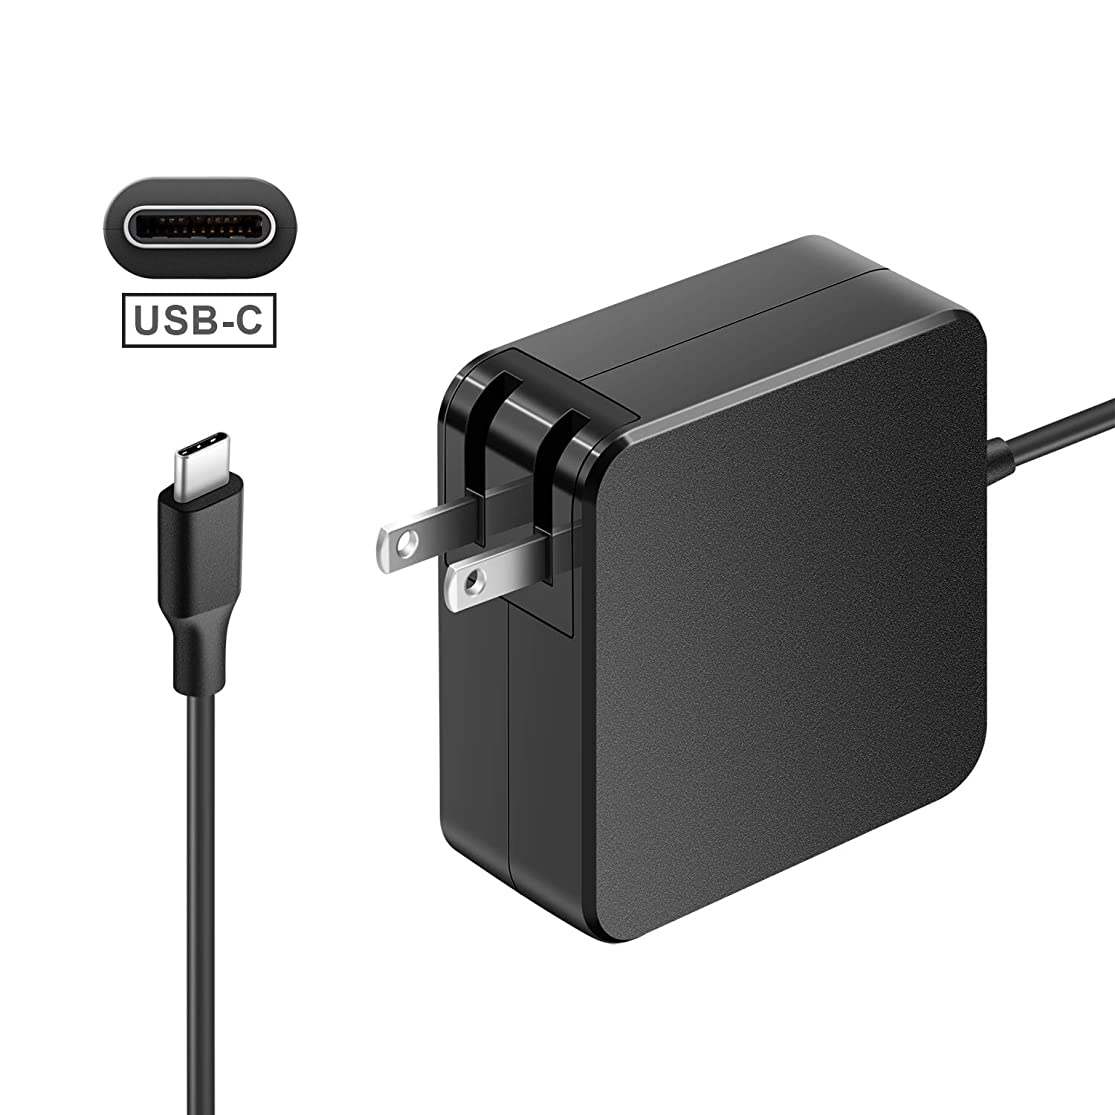 Aisilk Type C Adapter 65W USB-C Wall Charger with Power Delivery for MacBook/Pro, Dell, hp, Lenovo, Asus, Acer, Thinkpad, Matebook, Razer, Google, and More laptops Tablets and Cell Phones myogabpv1